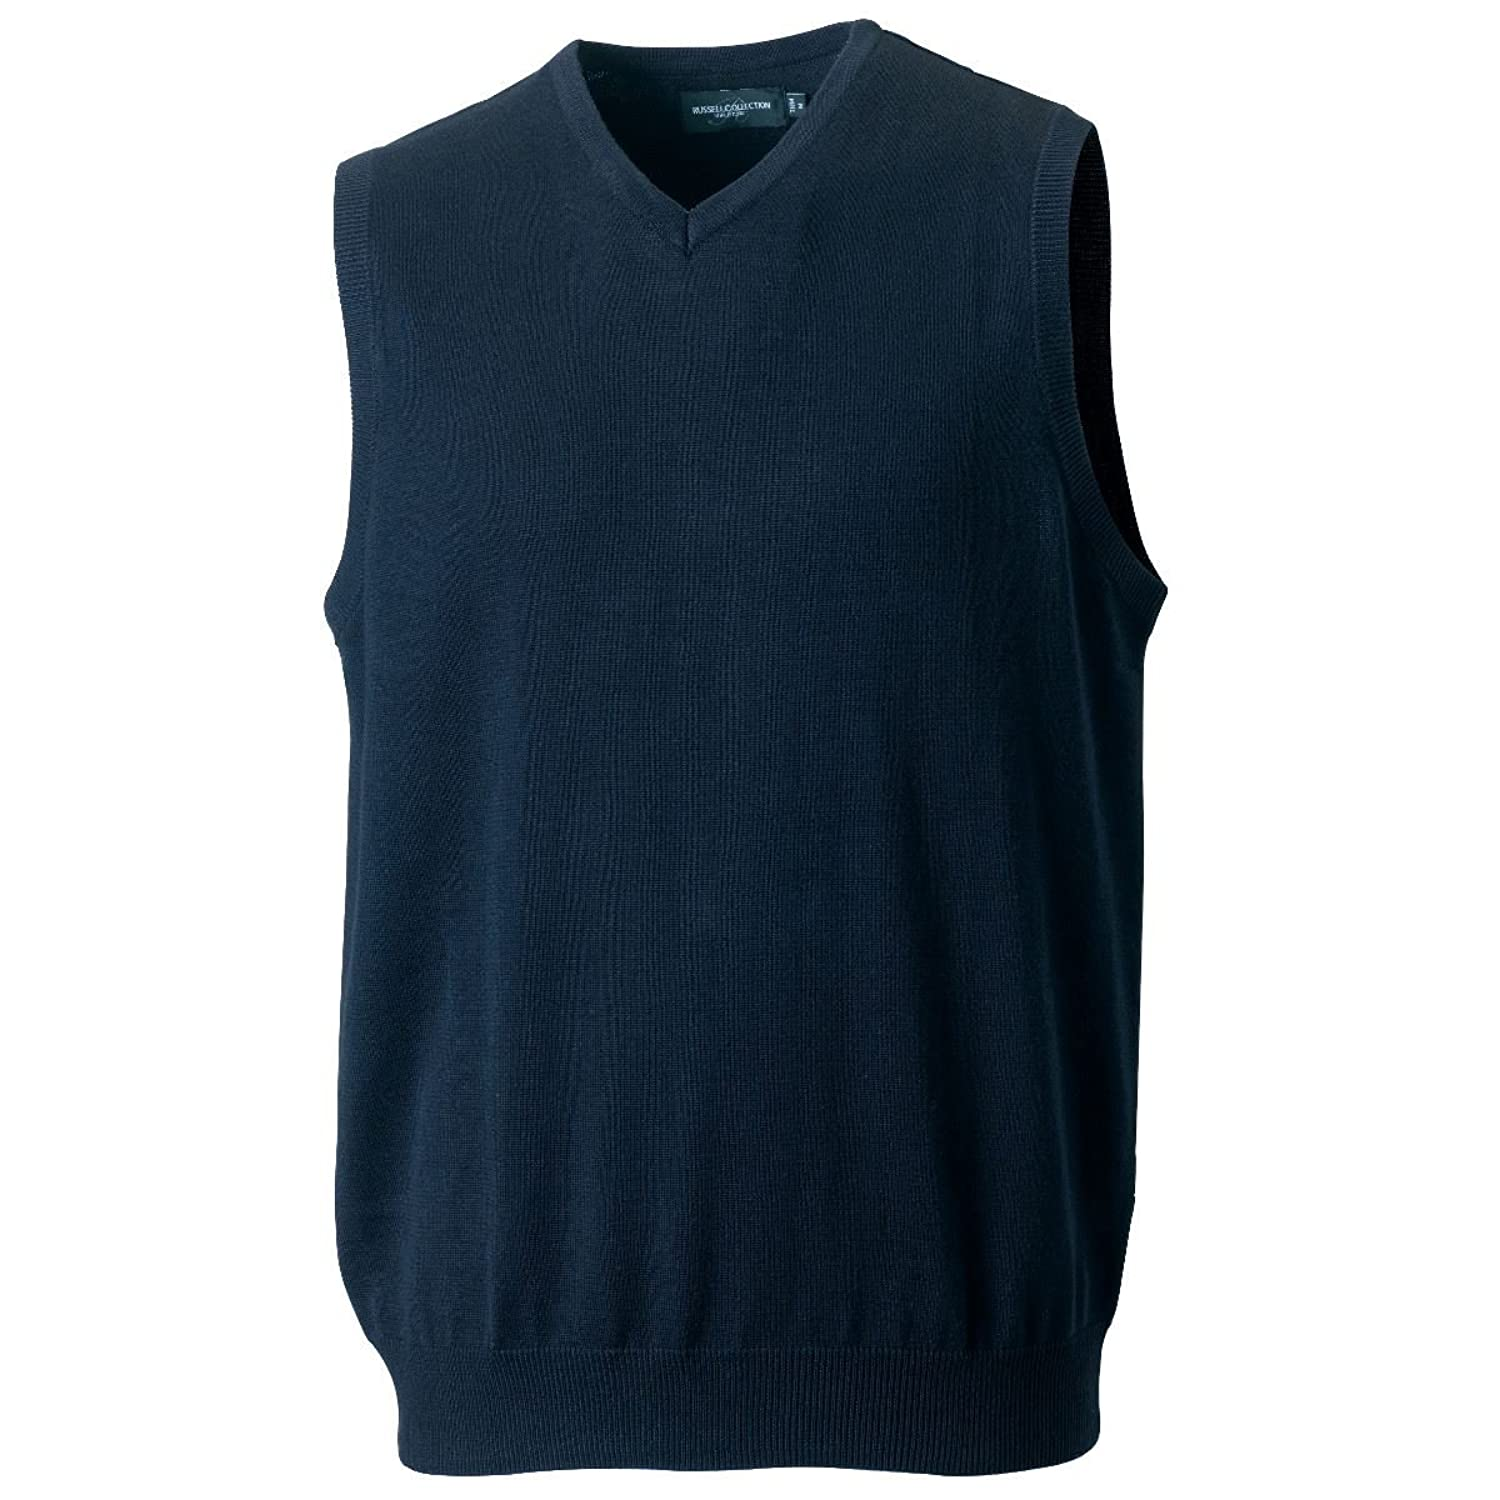 Russell 716M Mens V Neck Sleeveless Knitted Pullover Sweater French Navy XS